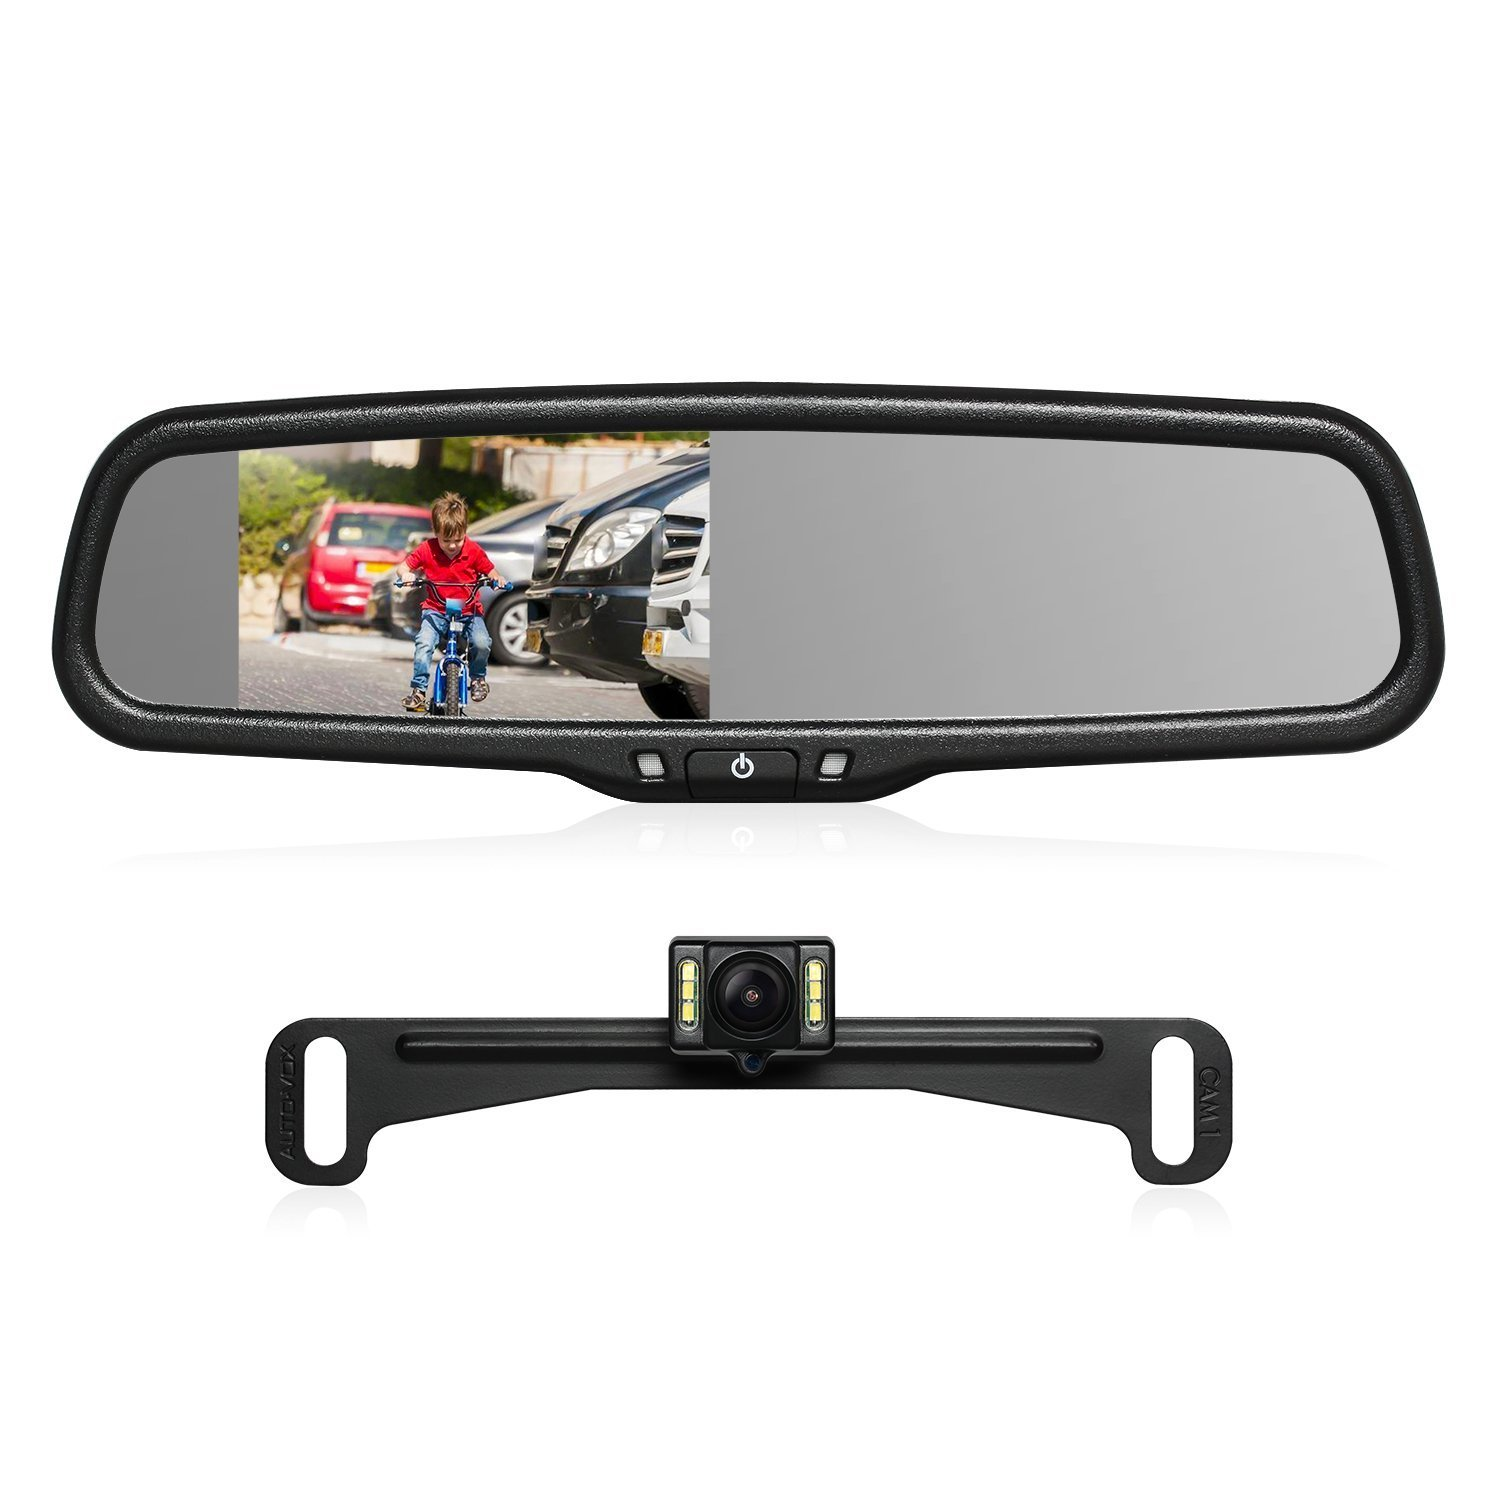 """AUTO-VOX T2 Backup Camera Kit 4.3"""" LCD OEM Car Rearview Mirror Monitor Parking and Reverse Assist with IP 68 Waterproof LED Night Vision Rear View License Plate Back up Car Camera for Cars Trucks RVs"""